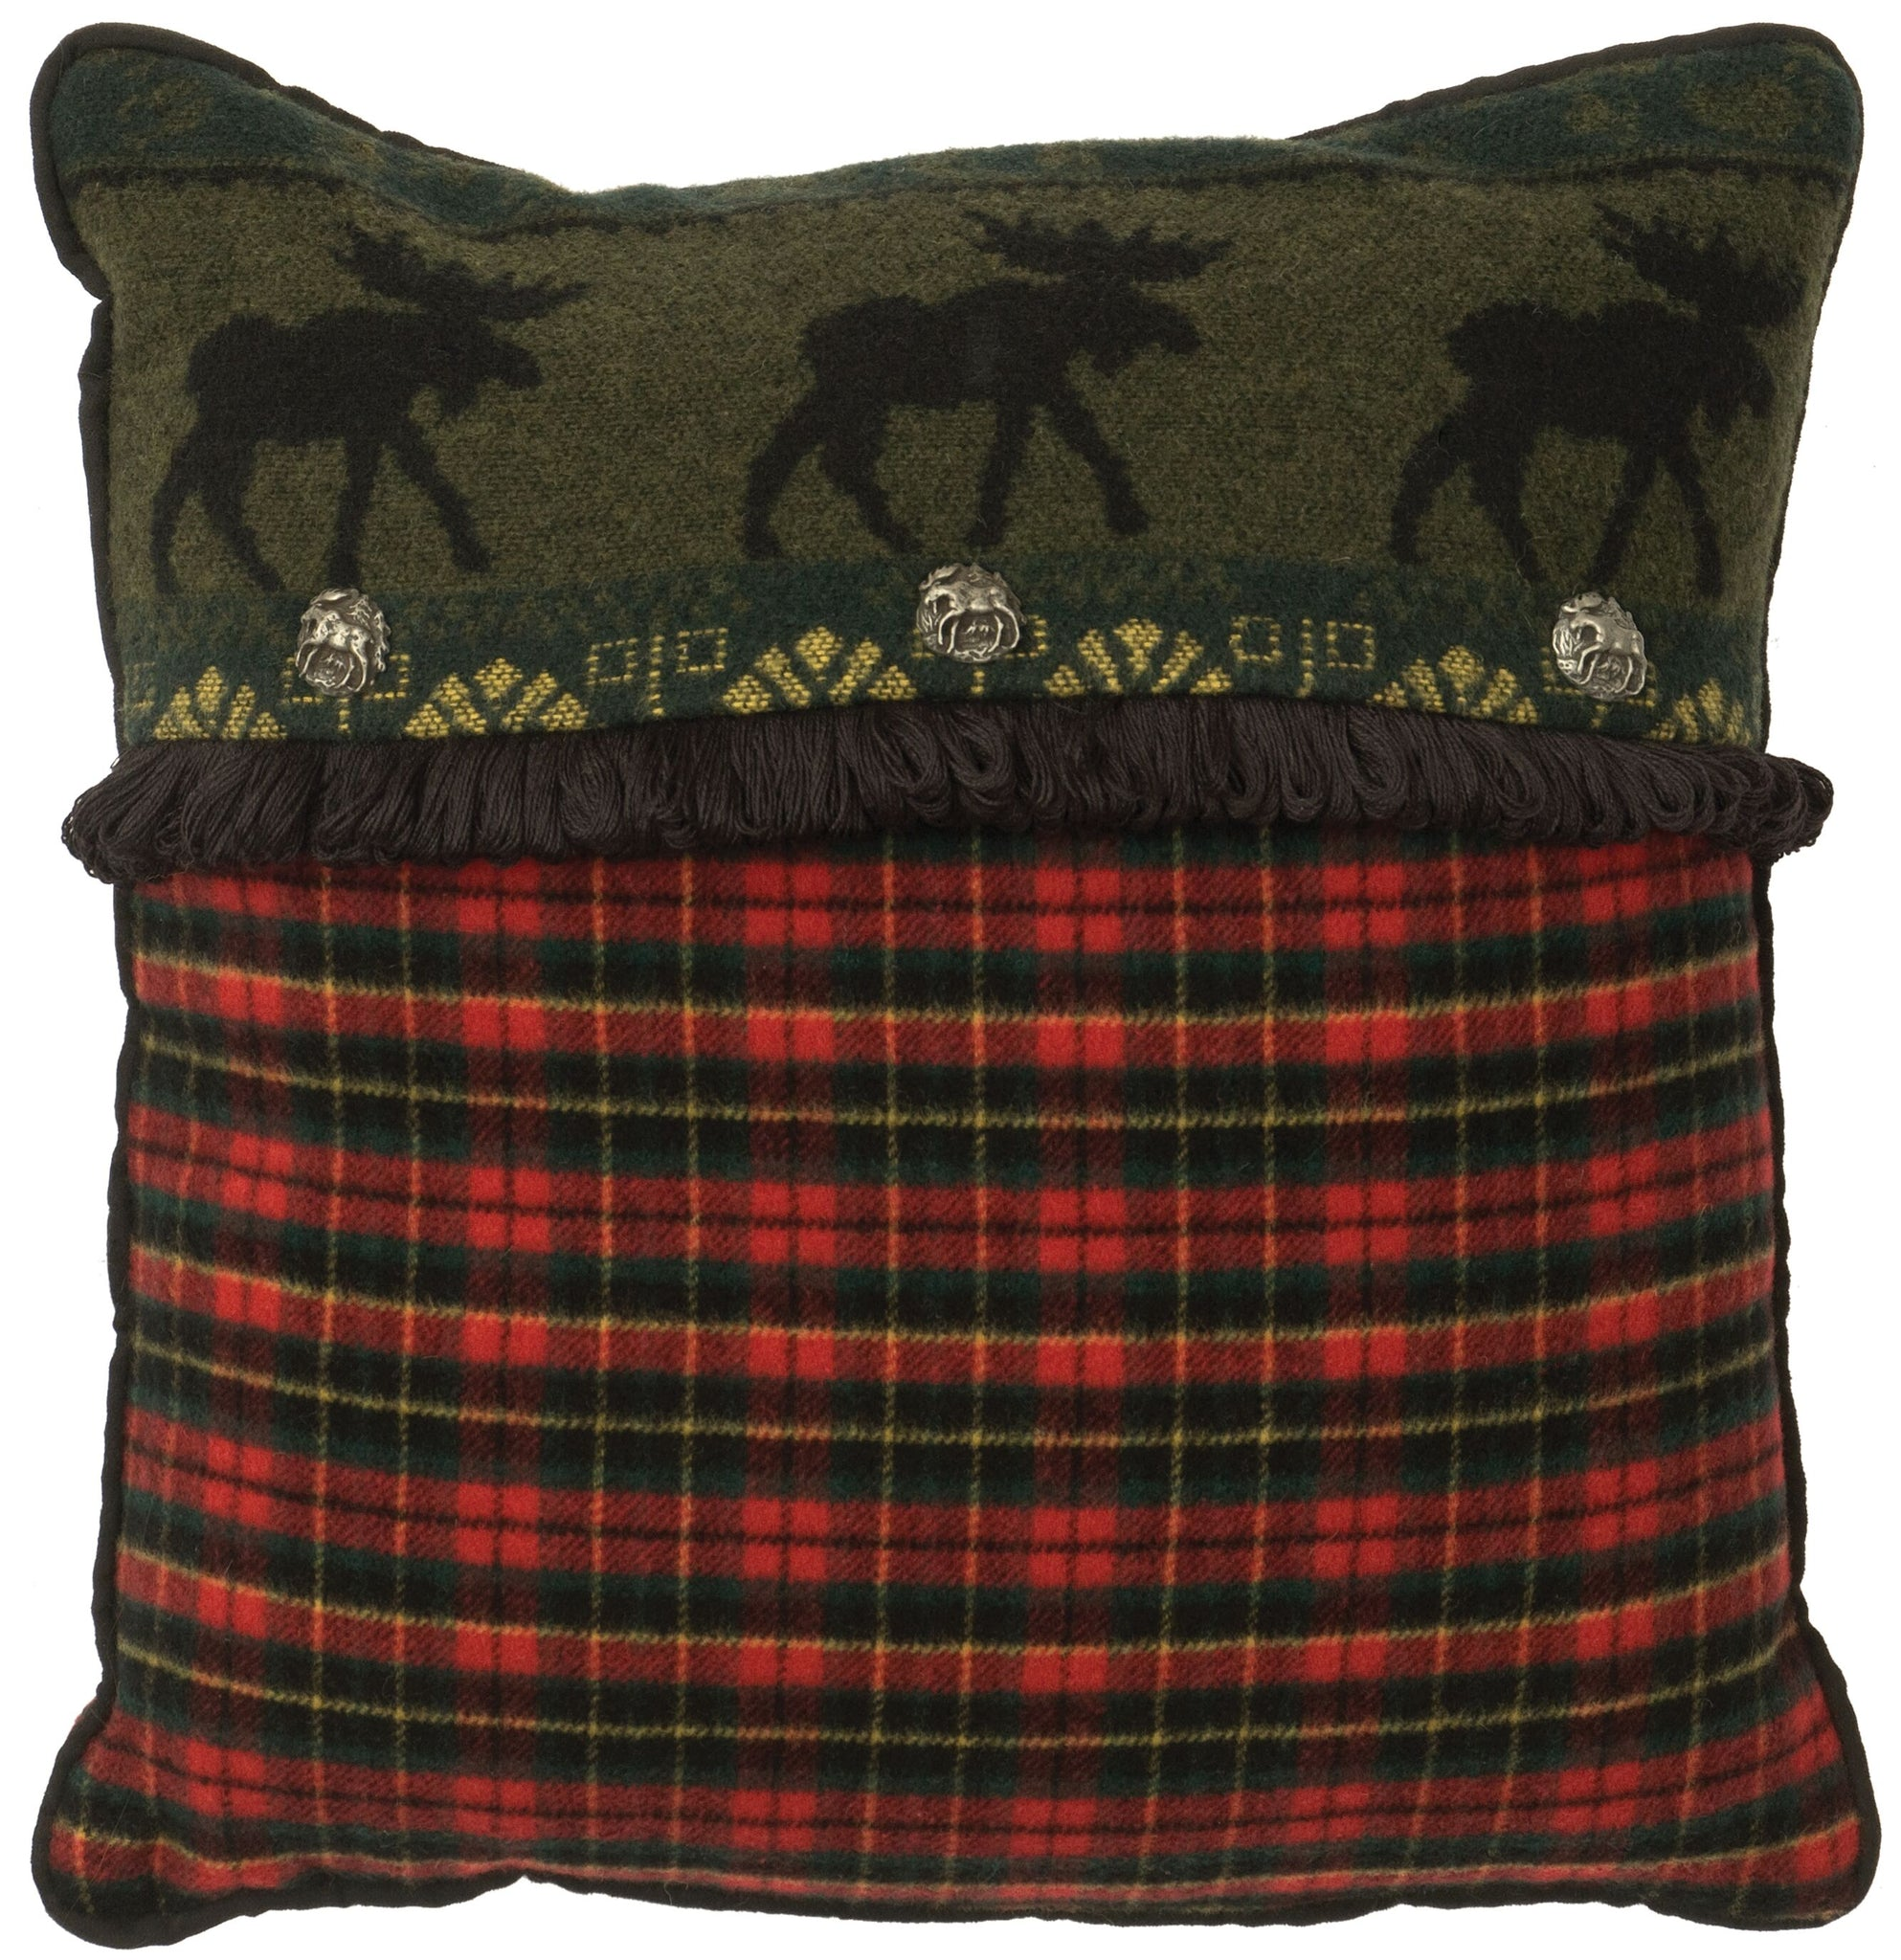 McWoods 1 Decor Pillow Wooded River - Unique Linens Online